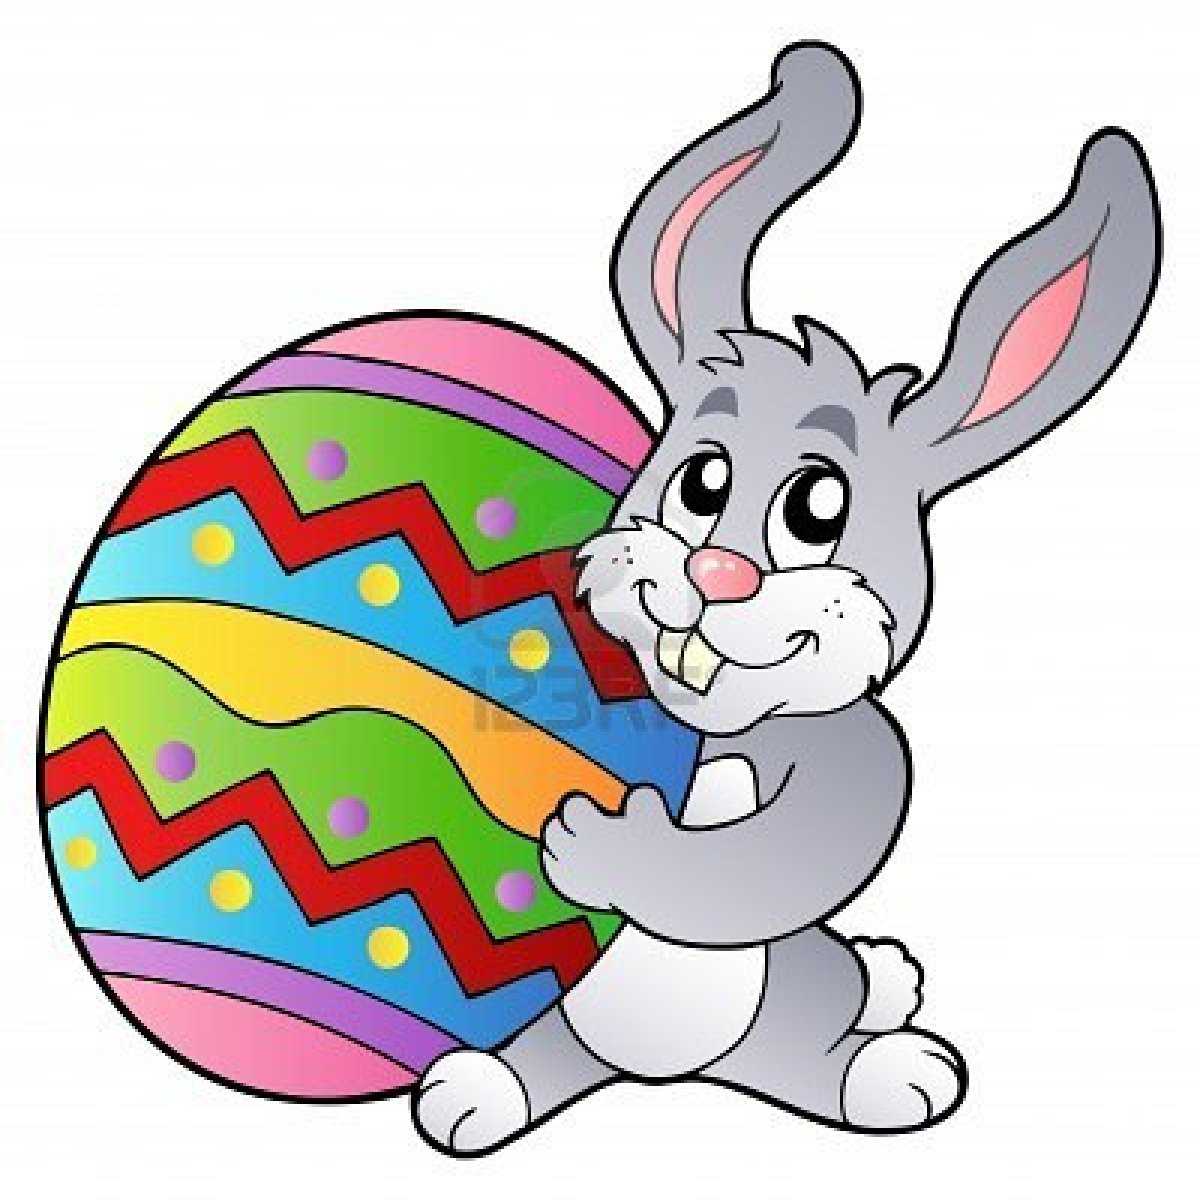 Images of Easter Bunnies And Eggs - Get Your Fashion Style